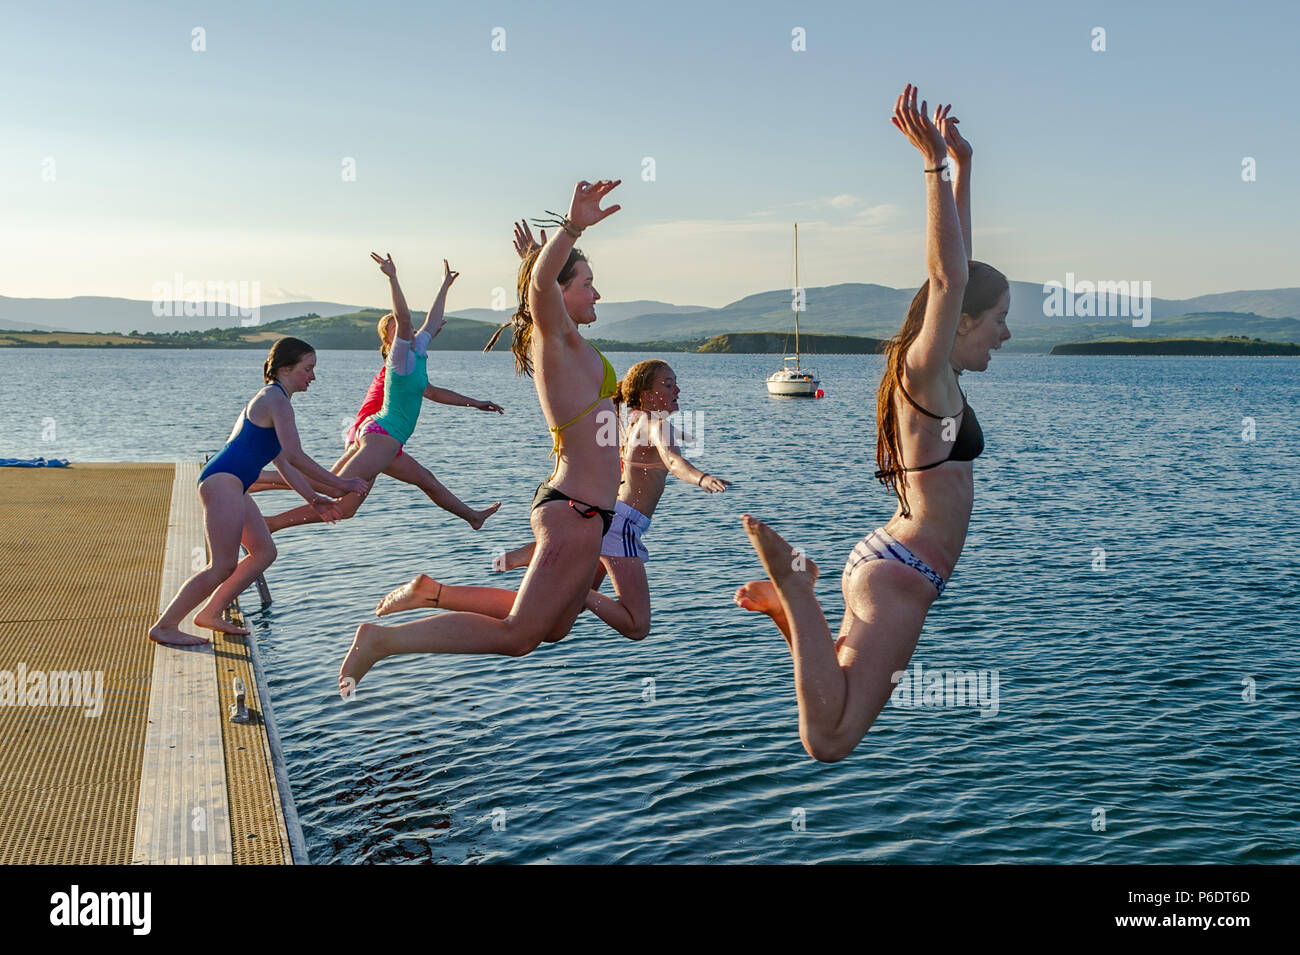 bantry-west-cork-ireland-29th-june-2018-after-a-scorchingly-hot-day-a-group-of-young-girls-jump-into-the-sea-from-a-pontoon-as-the-sun-goes-down-in-bantry-the-rest-of-the-weekend-will-be-cooler-than-previous-days-with-rain-forecast-for-next-week-credit-andy-gibsonalamy-live-news-P6DT6D.jpg